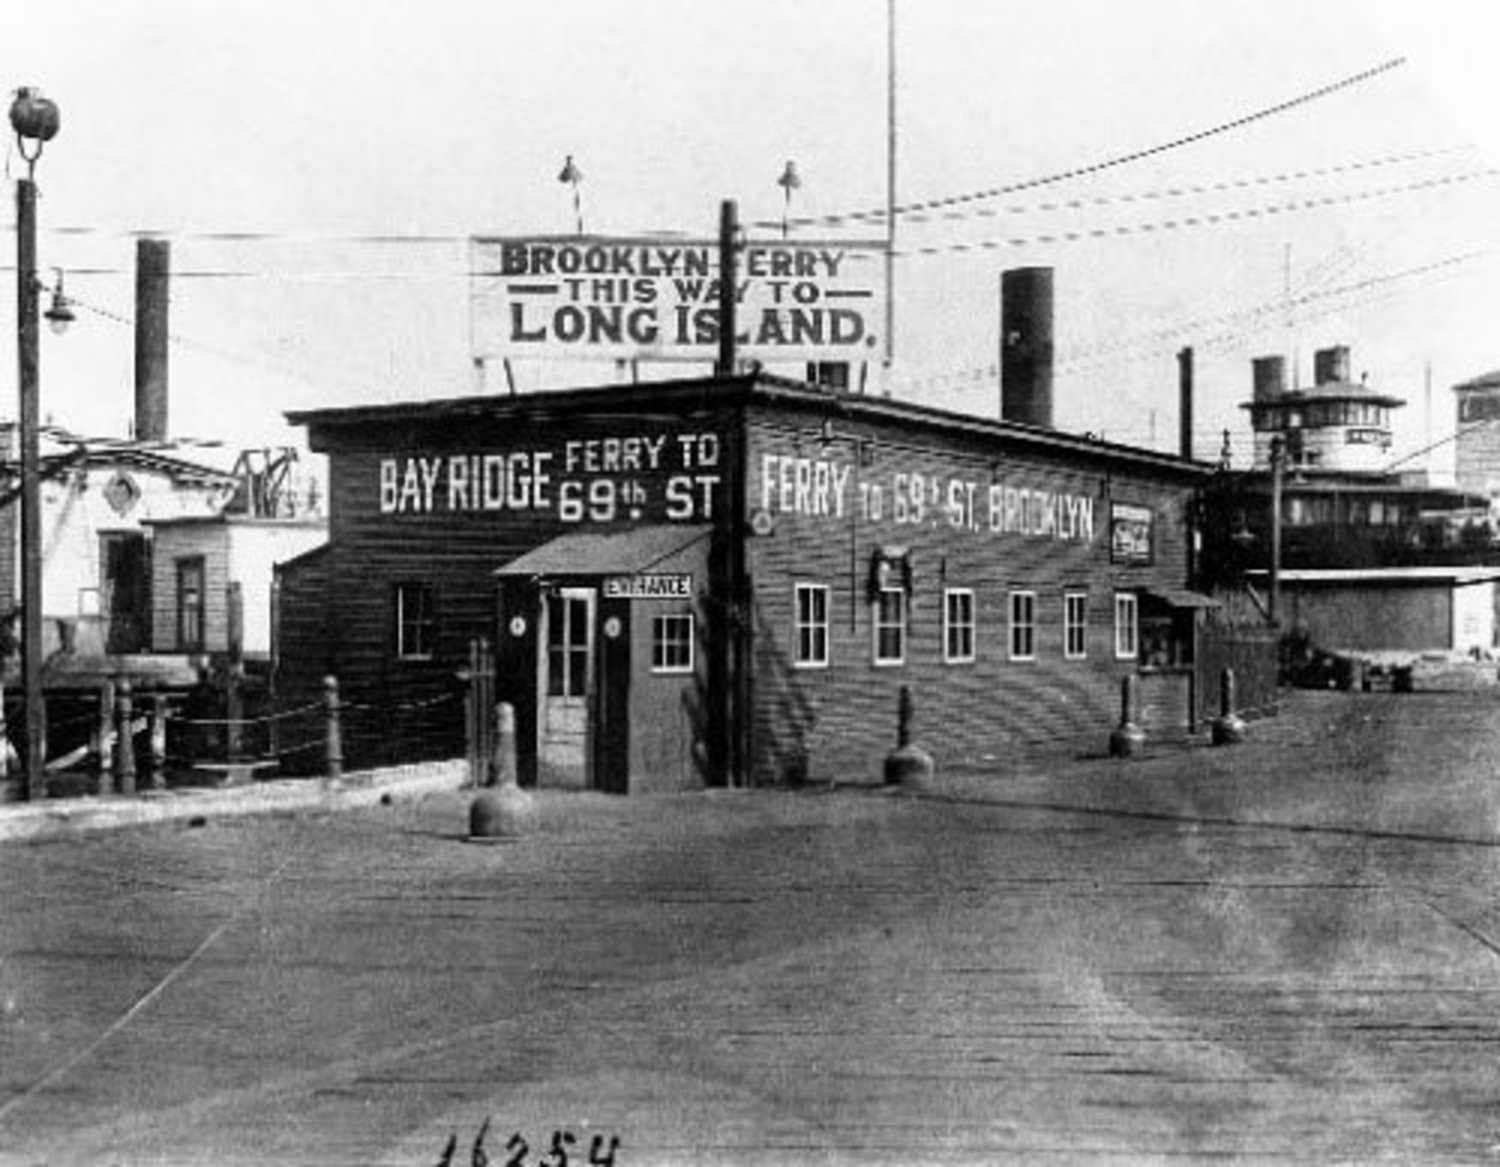 69th St. Ferry House, St. George, 1934. The ferry to Brooklyn went out of business when the Verrazano-Narrows Bridge opened in November 1964.